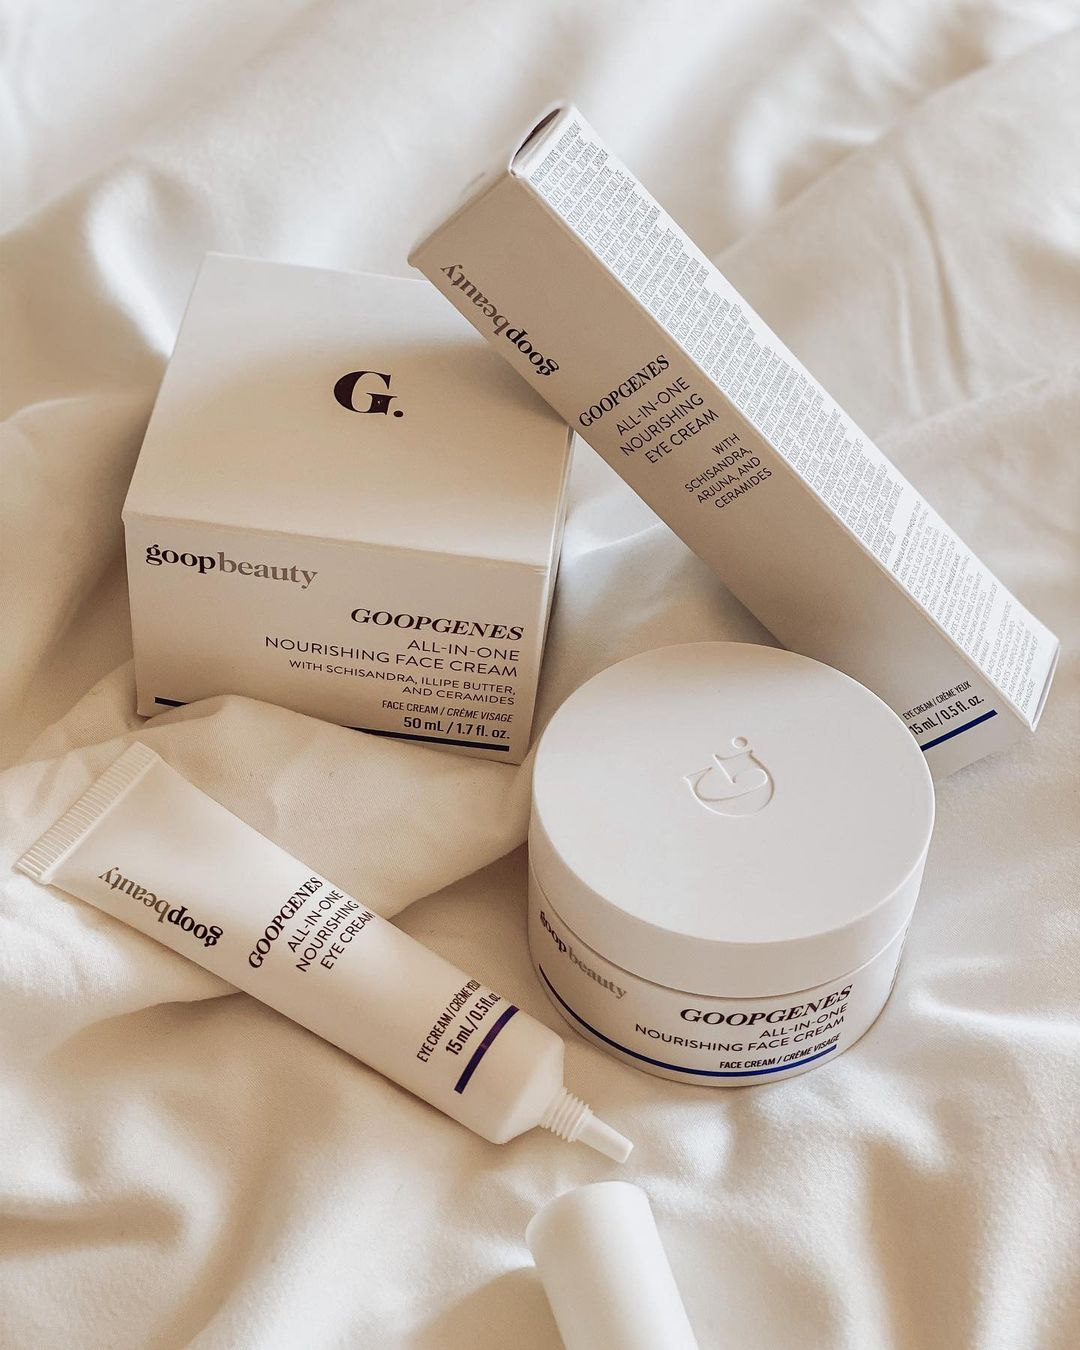 goopgenes-all-in-one-nourishing-face-cream-instagram